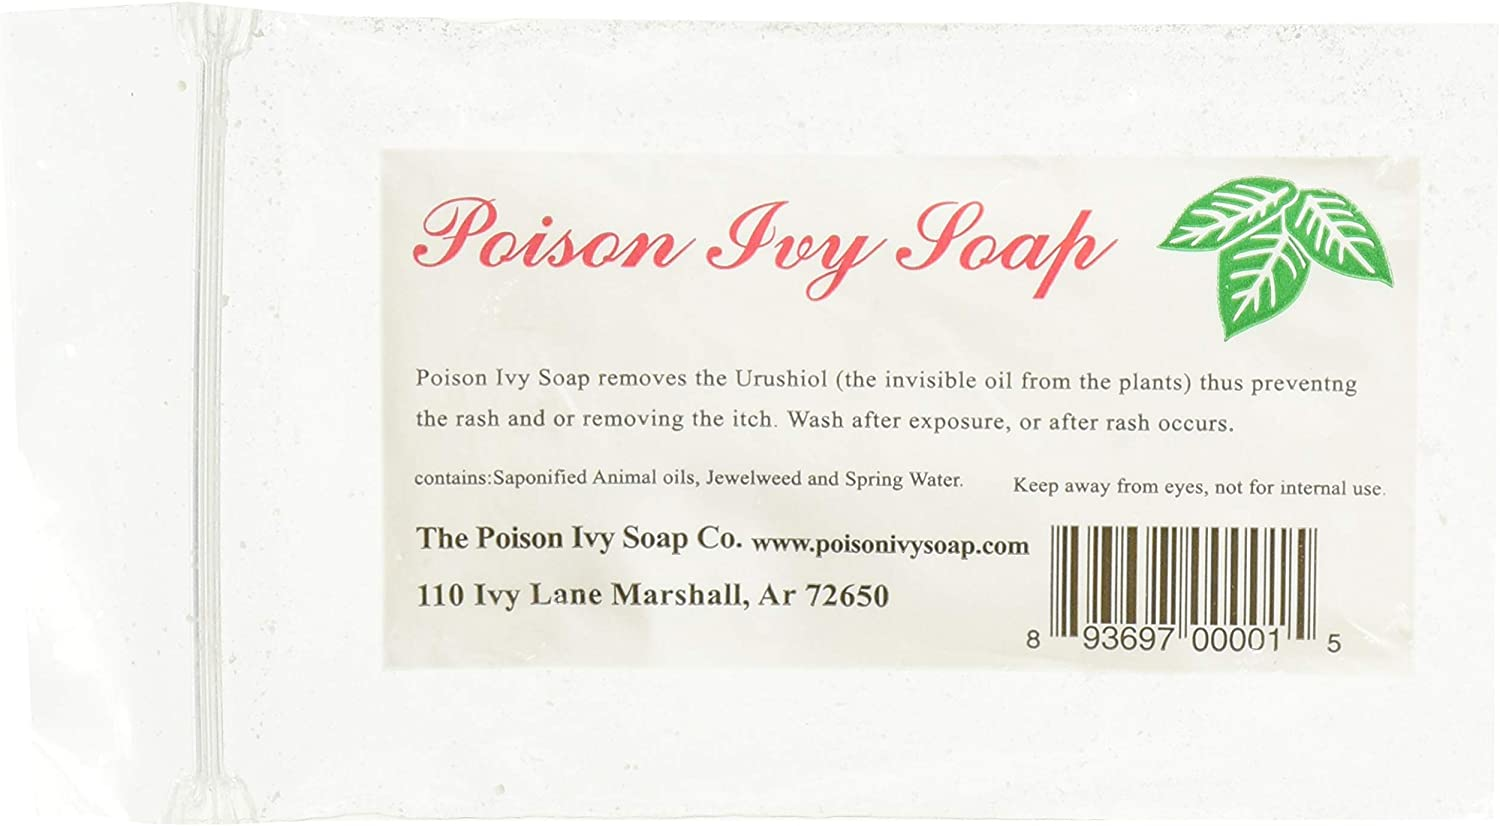 Stop The Itch with Poison Ivy Soap – All Natural Relief from Poison Ivy, Poison Oak, or Sumac, Safe for The Entire Family – Jewelweed Neutralizes Itching, Irritation, Removes Urushiol – 3 Pack